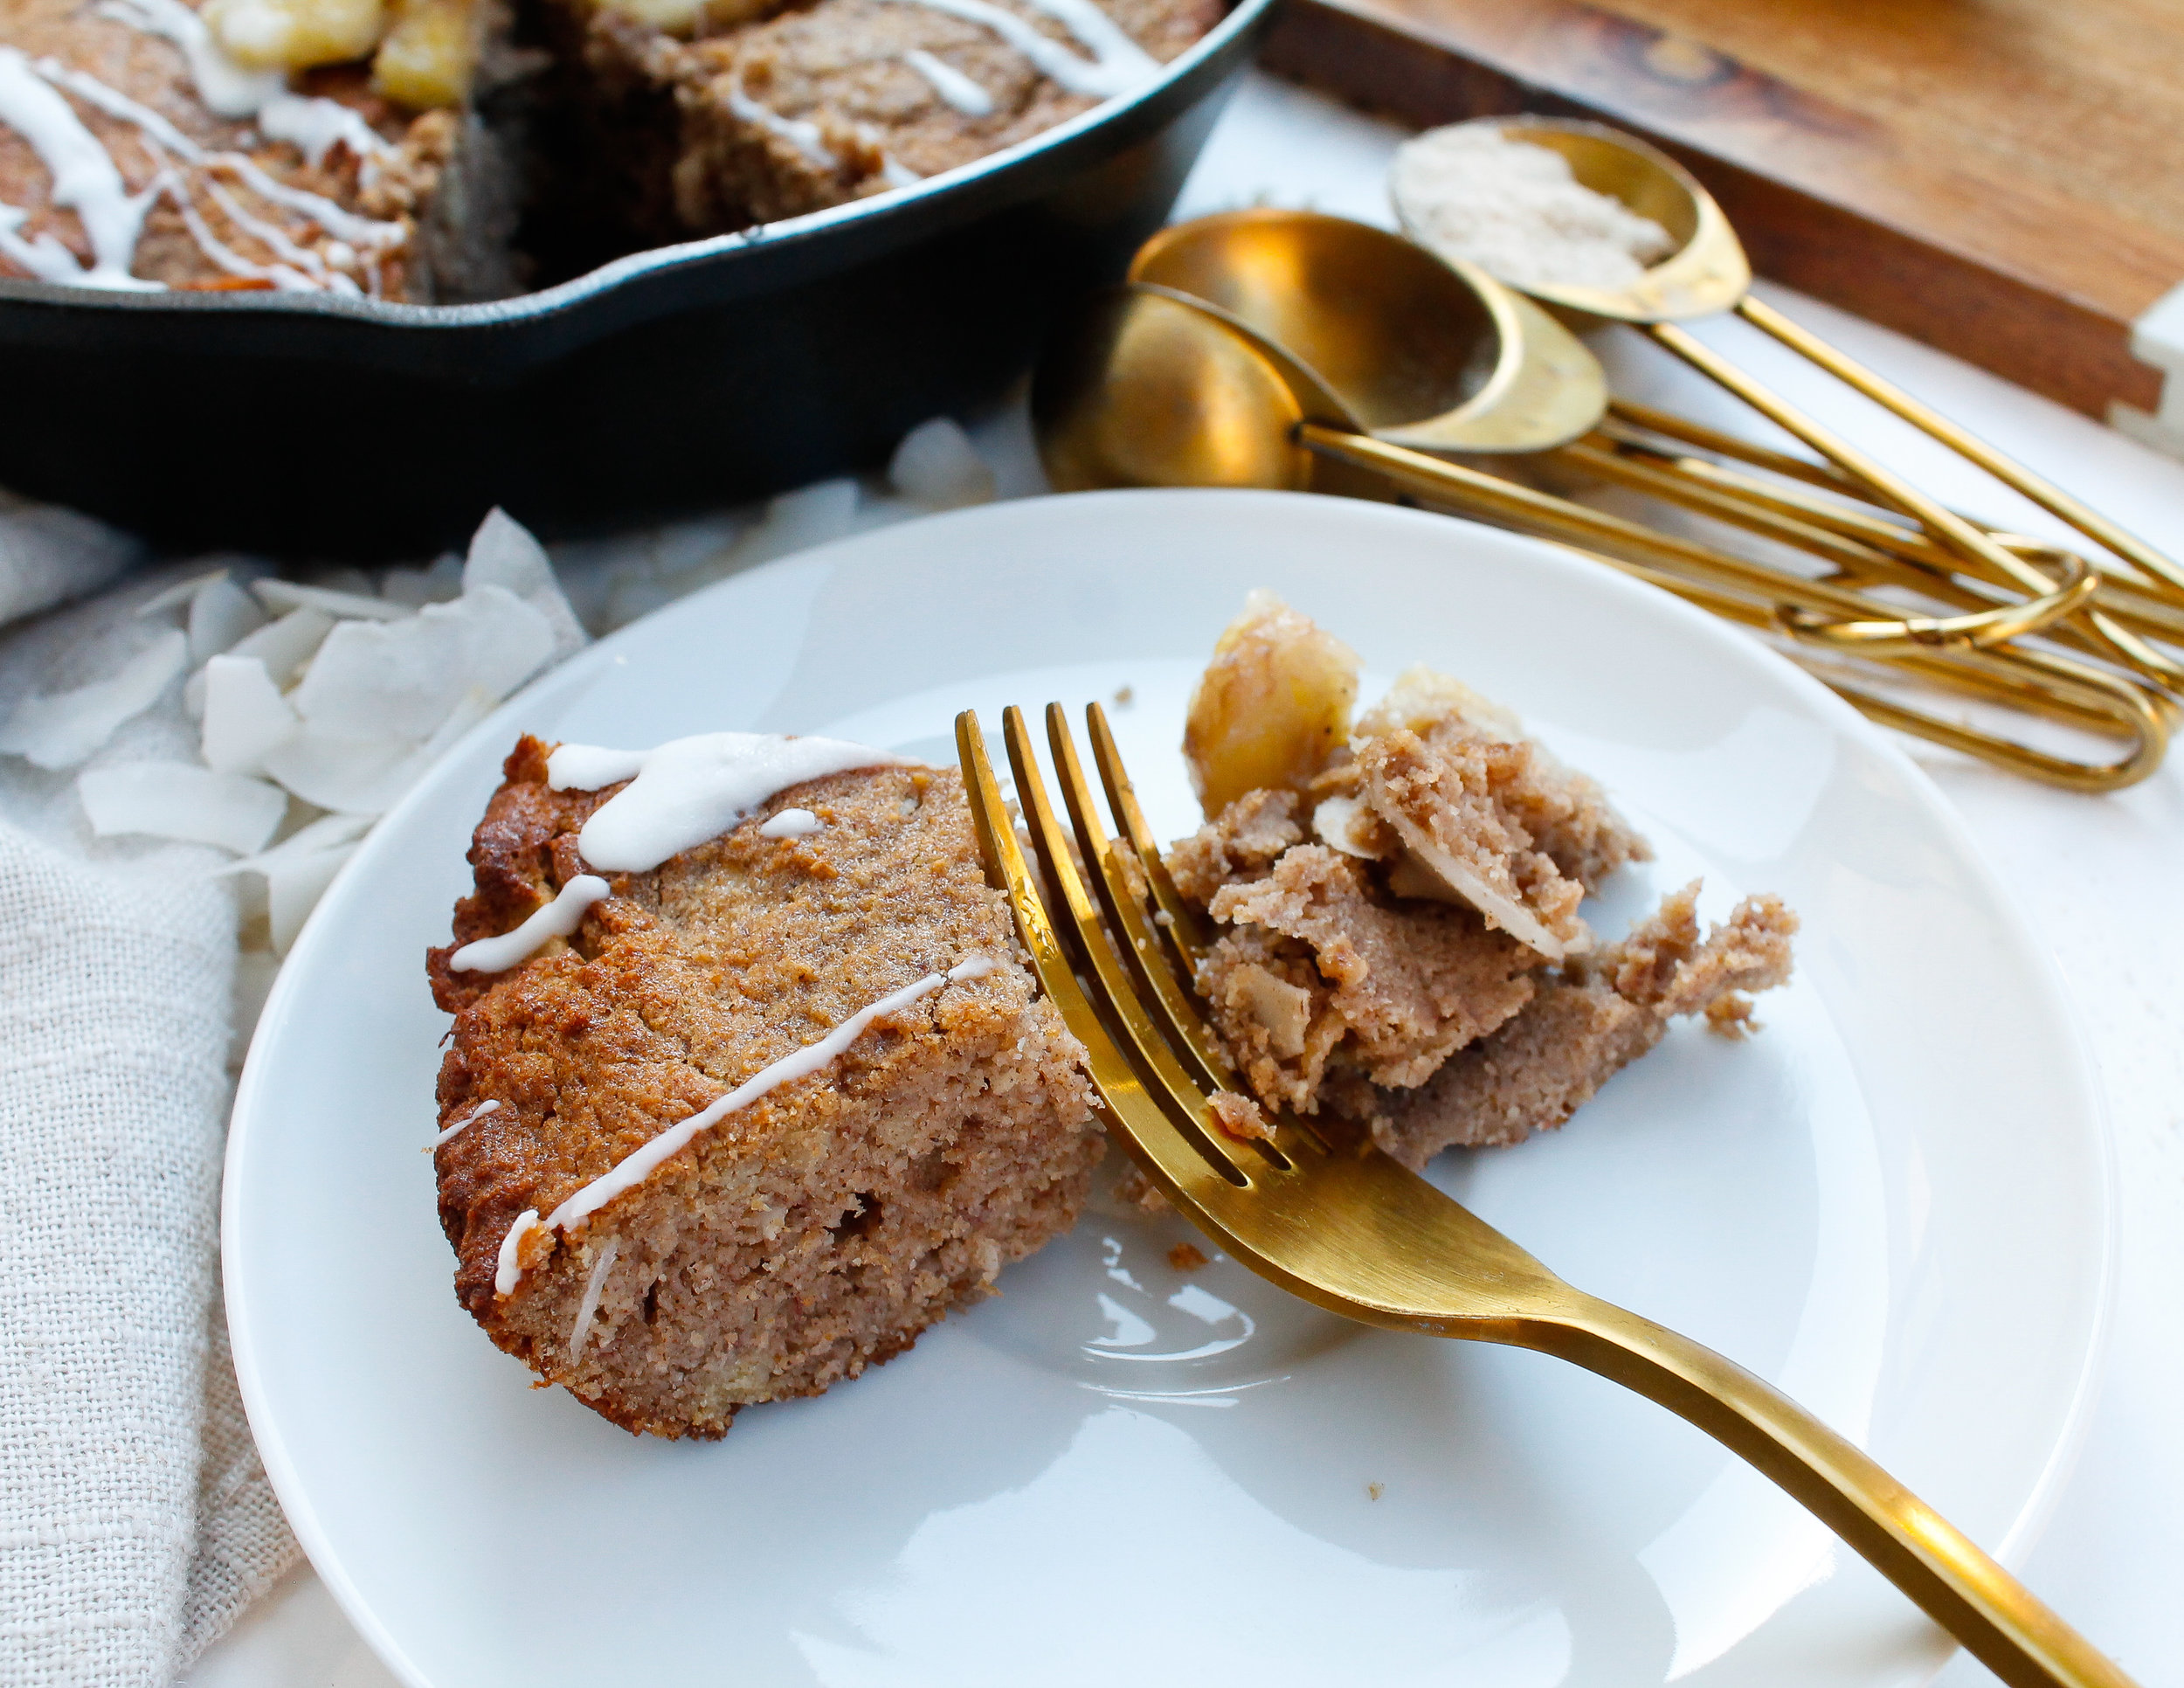 tigernut flour banana bread || this tigernut flour, nut free banana bread is grain free, paleo, gluten free, dairy free, AND refined sugar free. Full of REAL ingredients, nourishing ingredients and healthy fats. The perfect healthy breakfast or healthy. sweet treat. #paleobananabread #tigernutflour #nutfreebananabread #nutfreerecipes #nutfreebaking